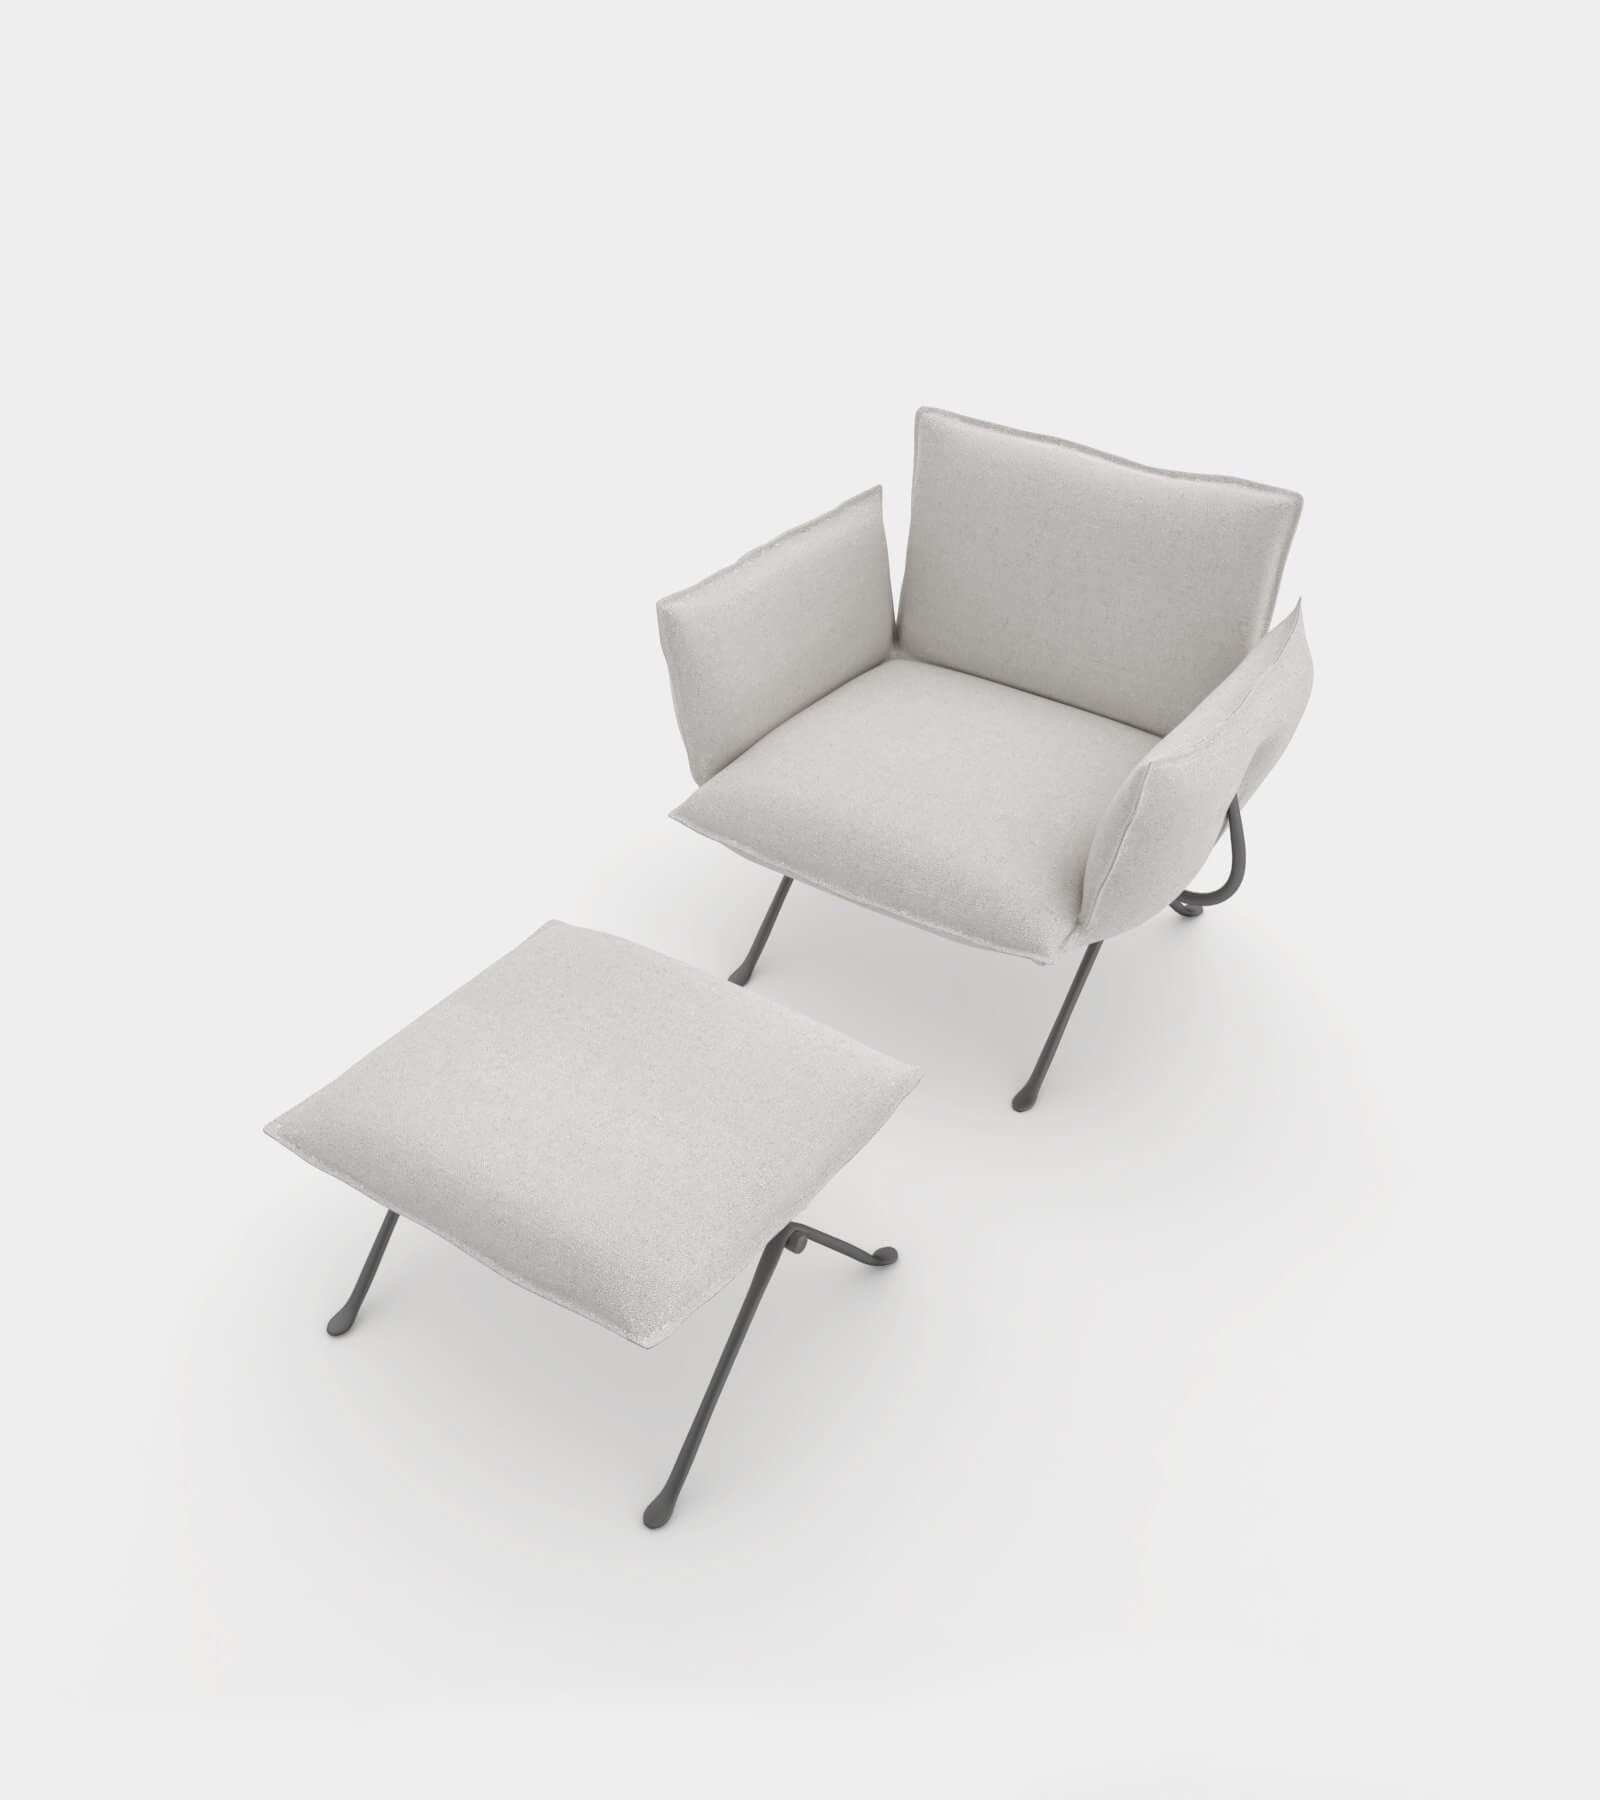 Armchair with ottomane-13 3D Model